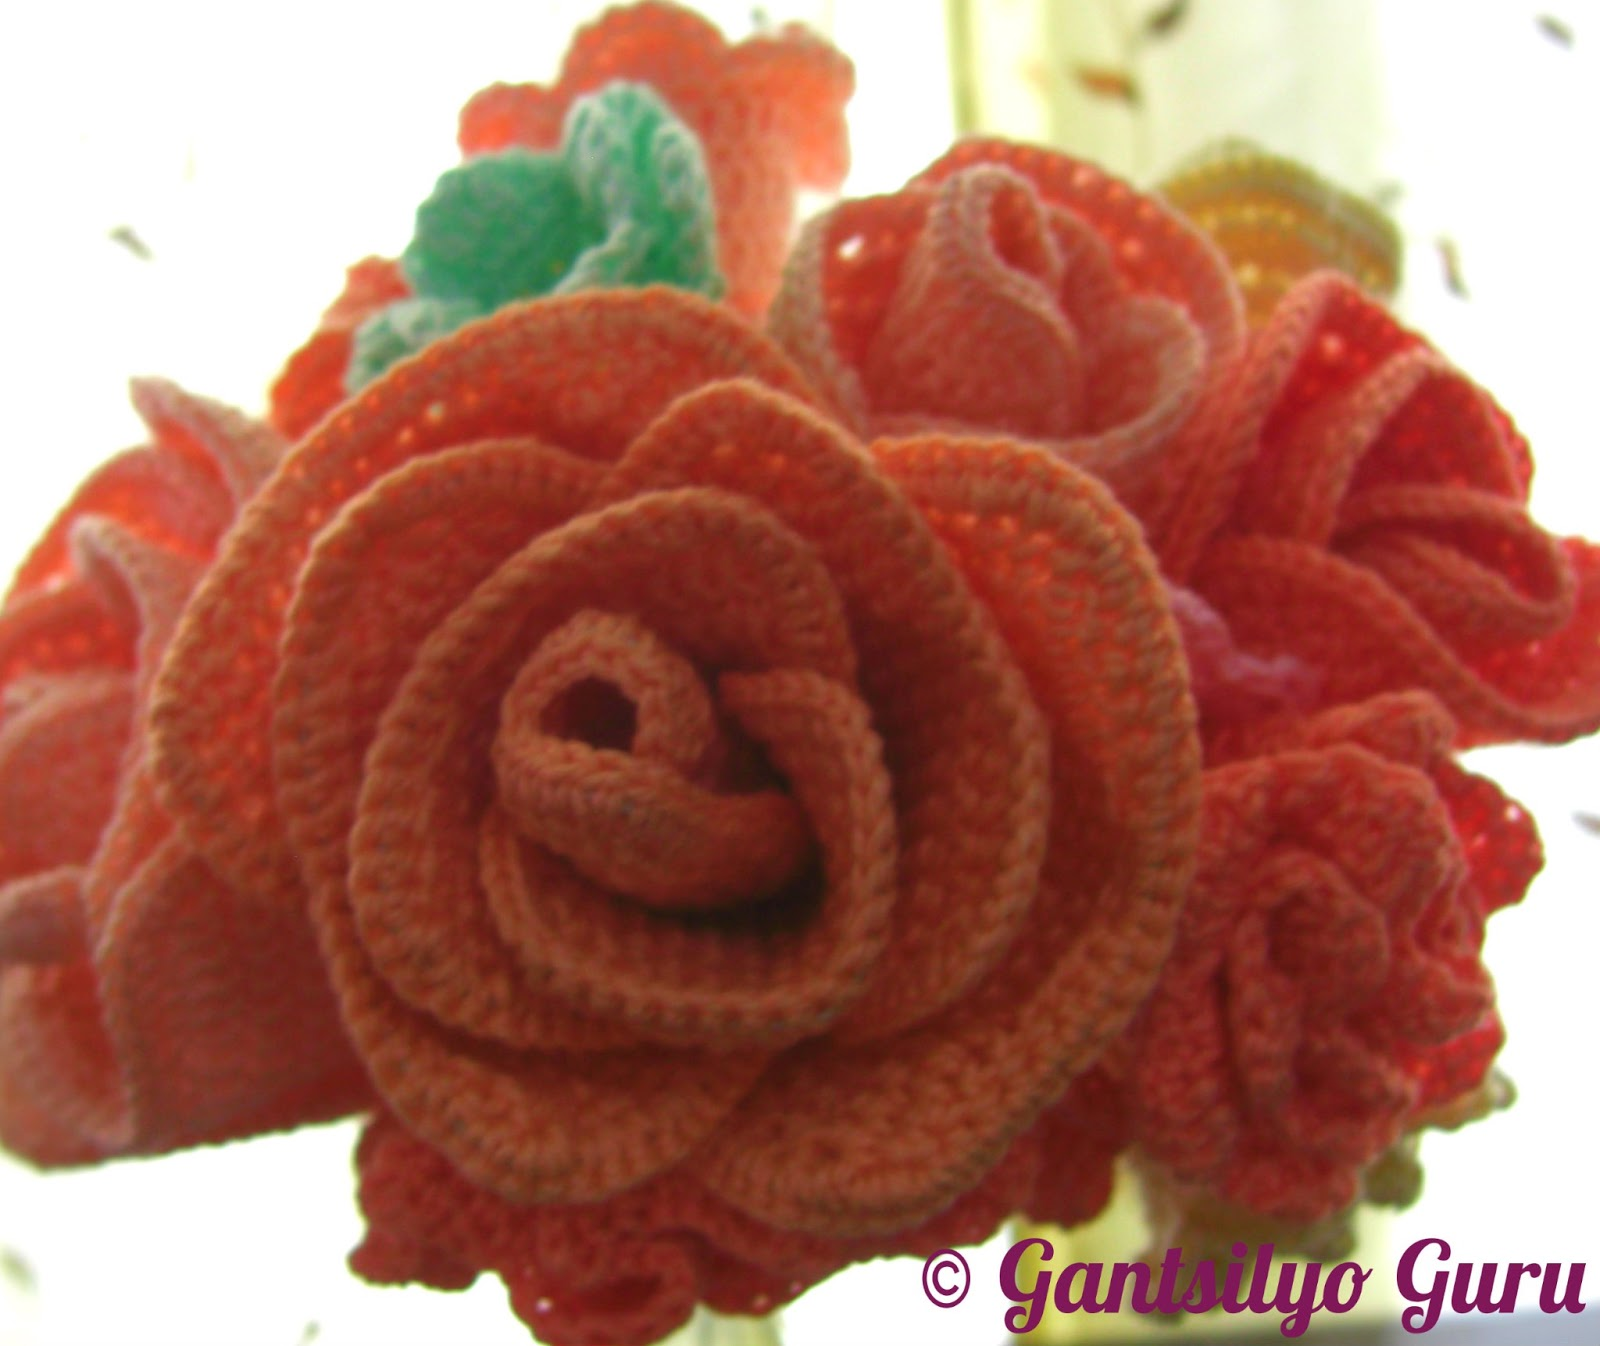 Gantsilyo guru wish granted finally making a crocheted bouquet of course i can only reveal the completed one after the wedding on the 1st week of may i cannot wait izmirmasajfo